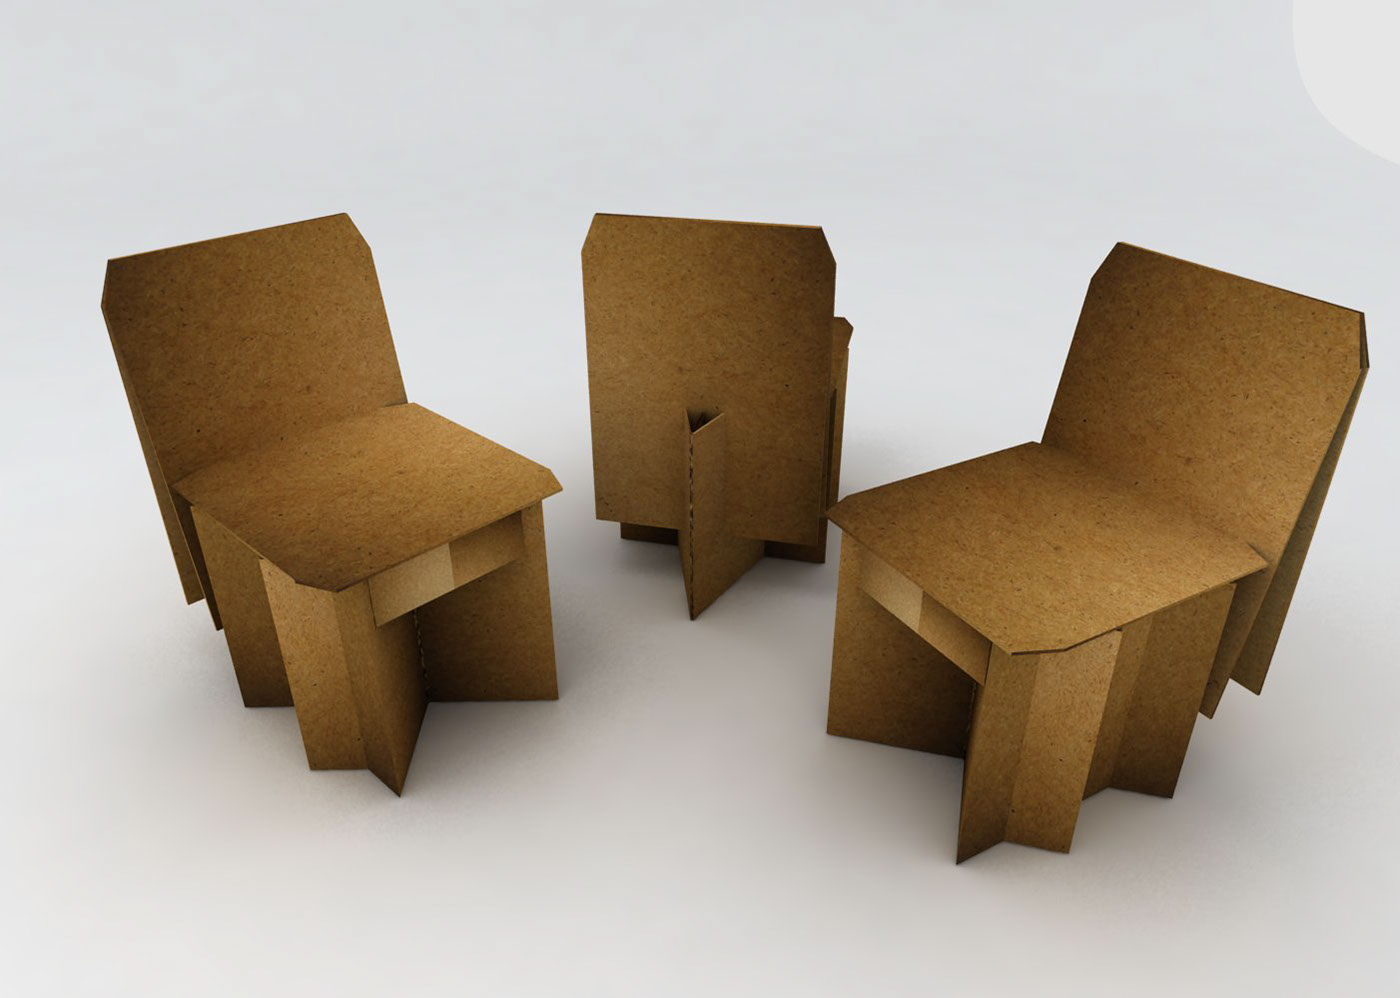 Silla de cart n plegable on behance - Sillas de carton plegables ...